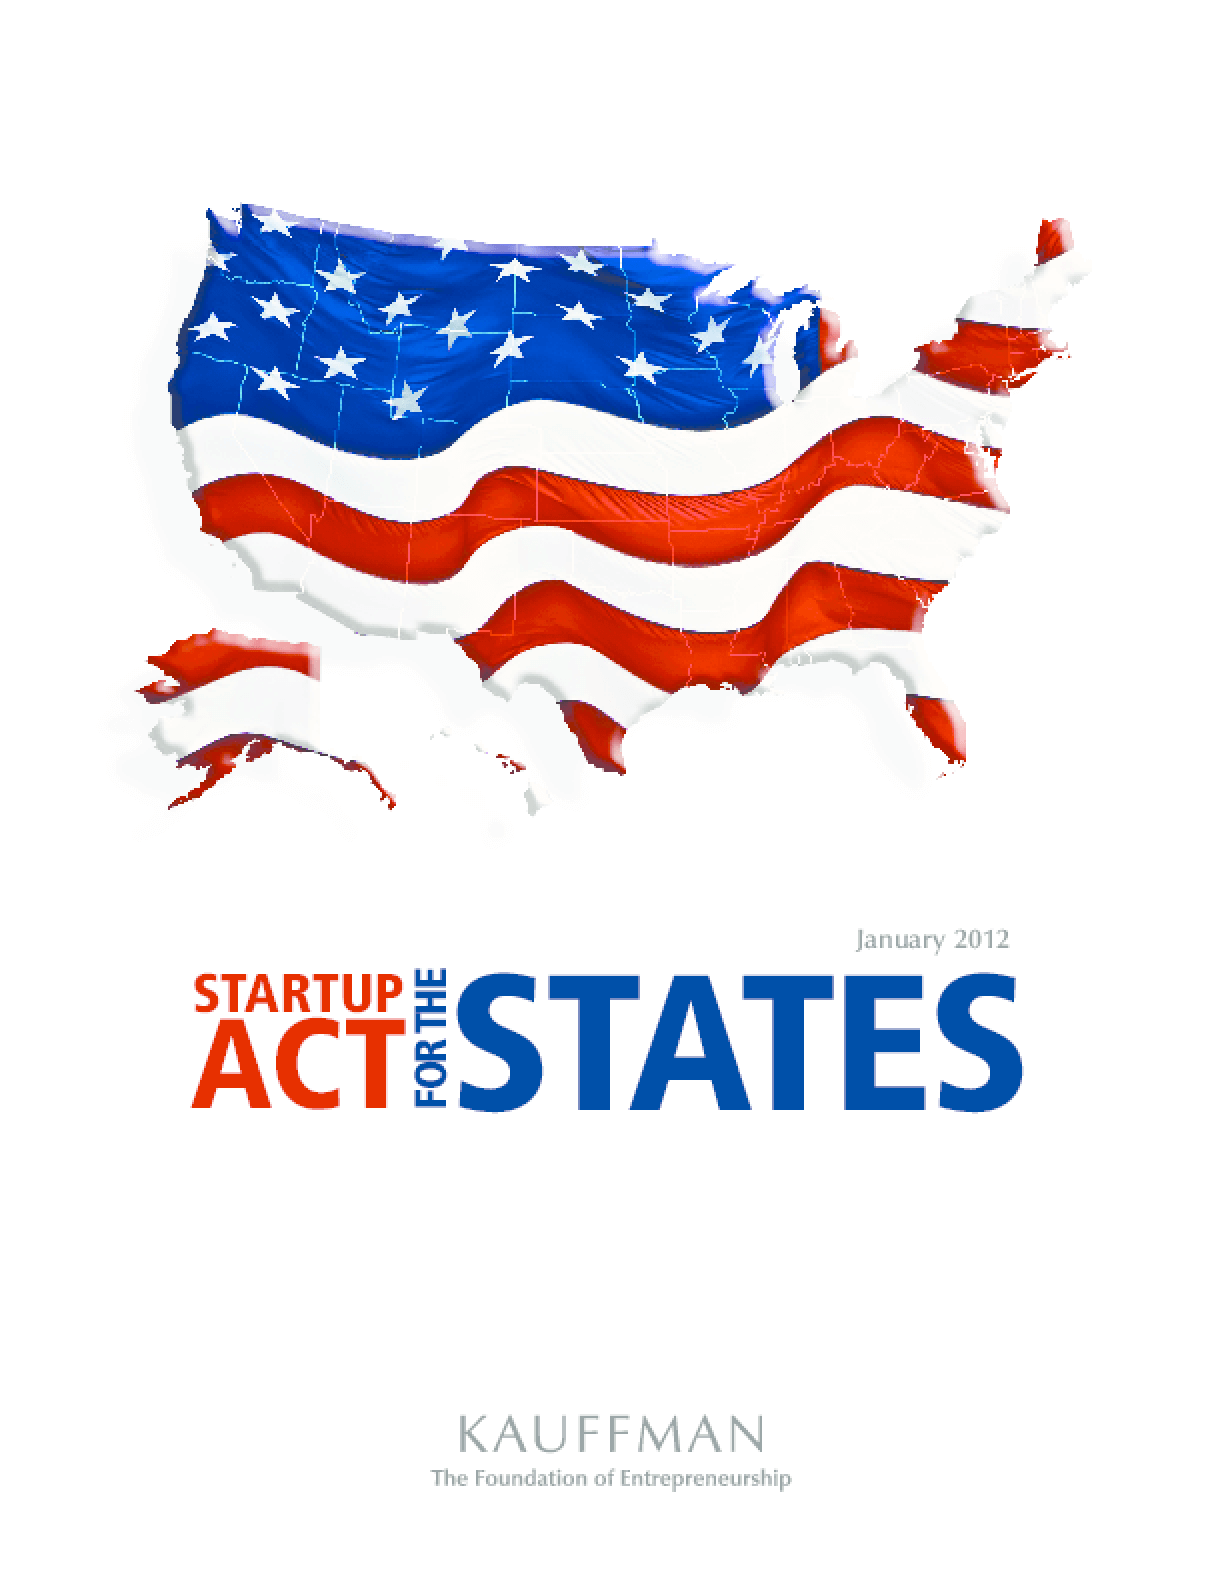 Startup Act for the States